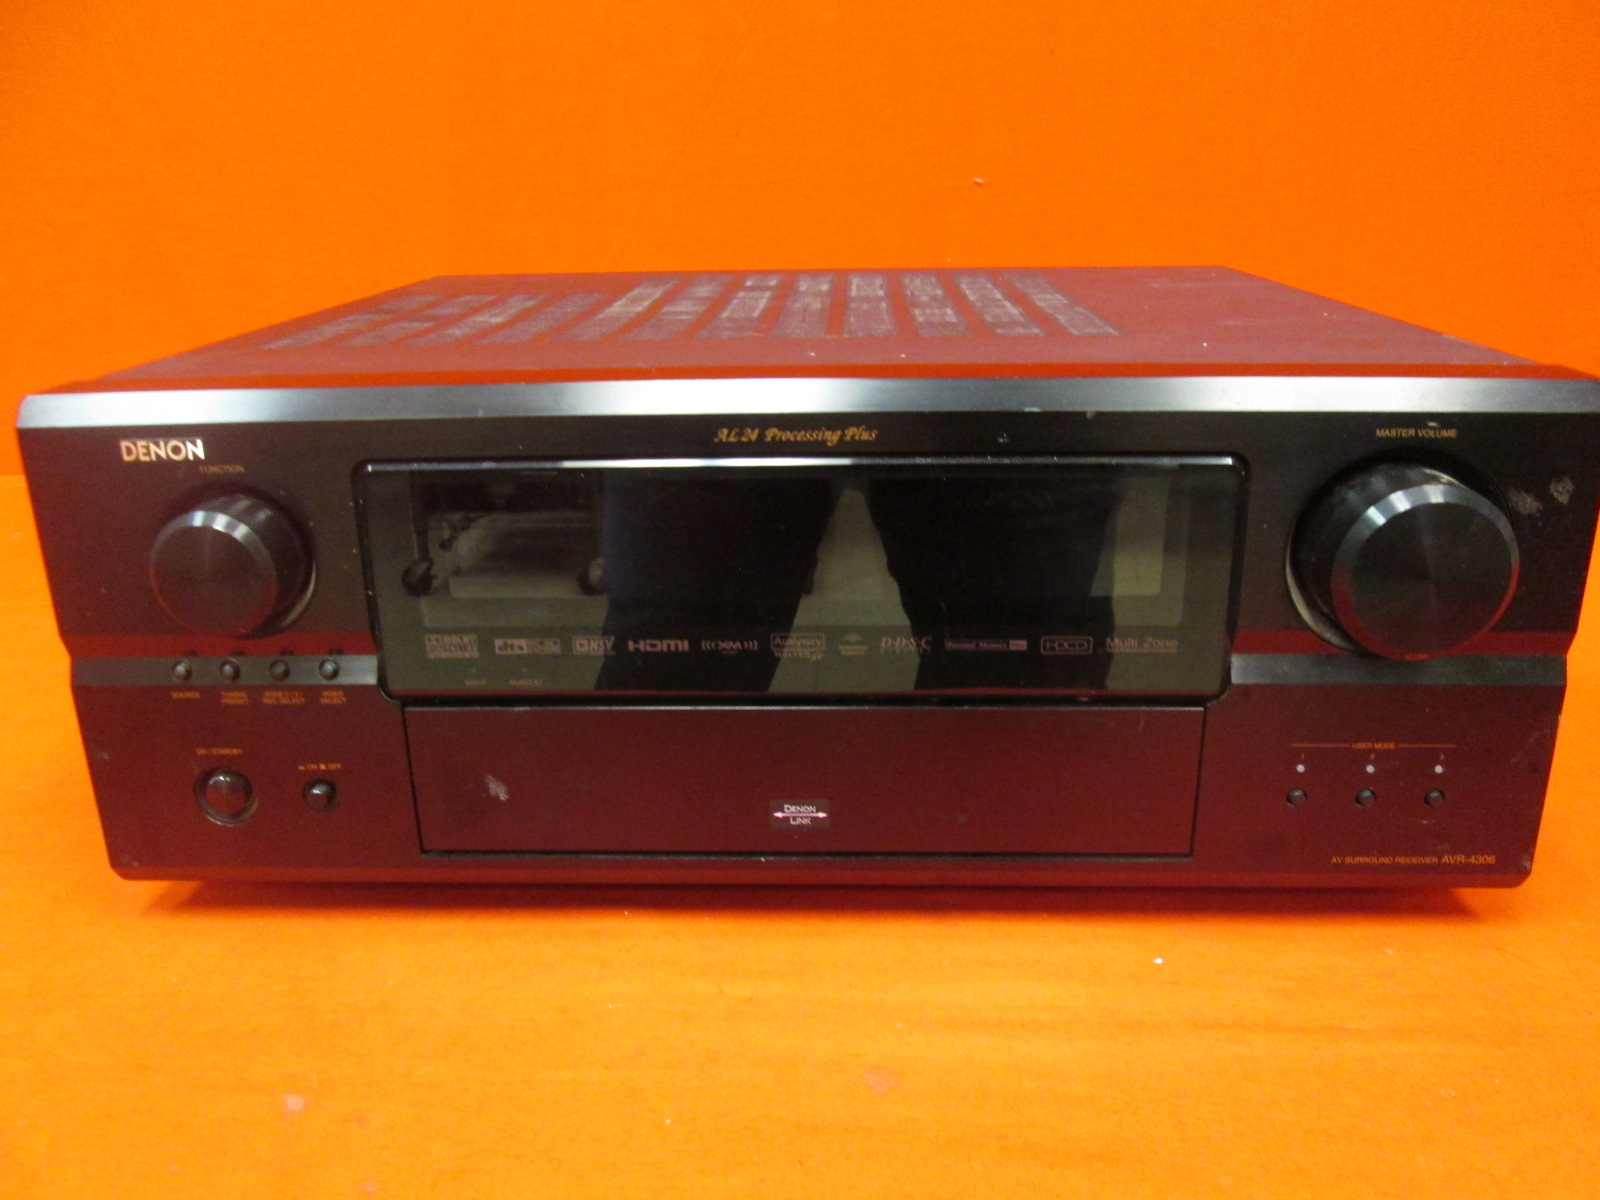 Image 1 of Denon AVR-4306 7.1 Channel 910 Watts Home Theater Receiver